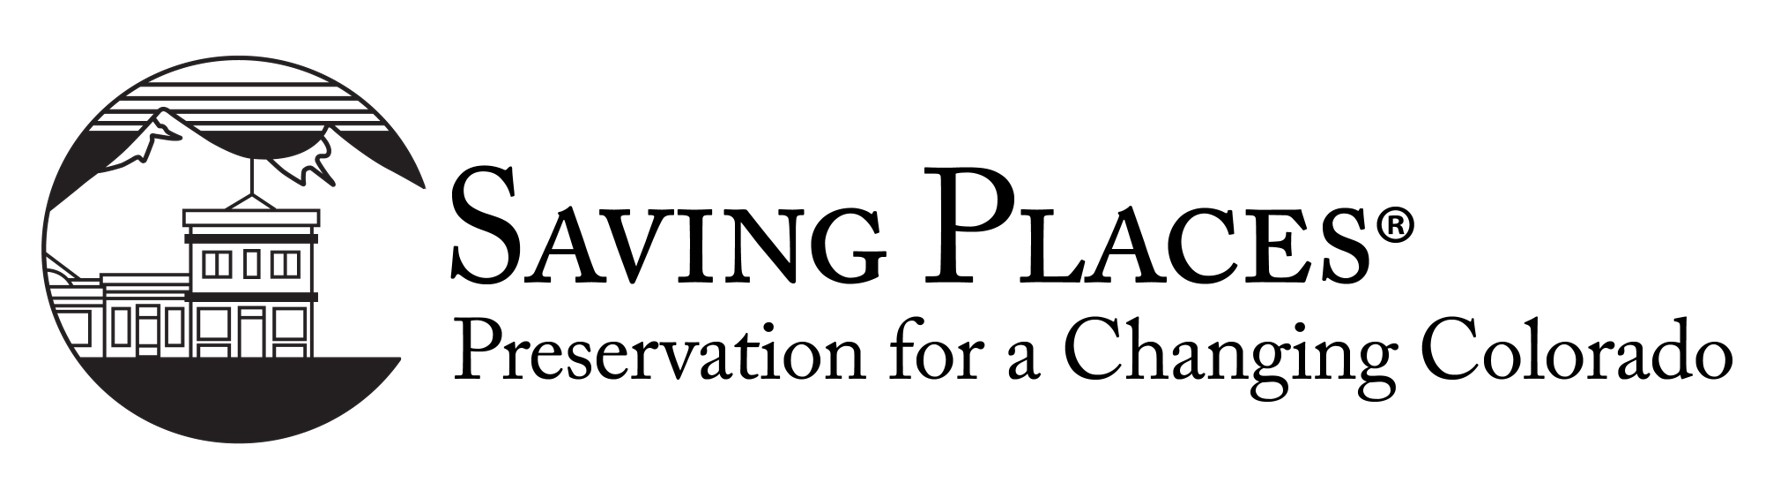 Savings Places Conference logo that includes a small black and white image of a building in front of a mountain